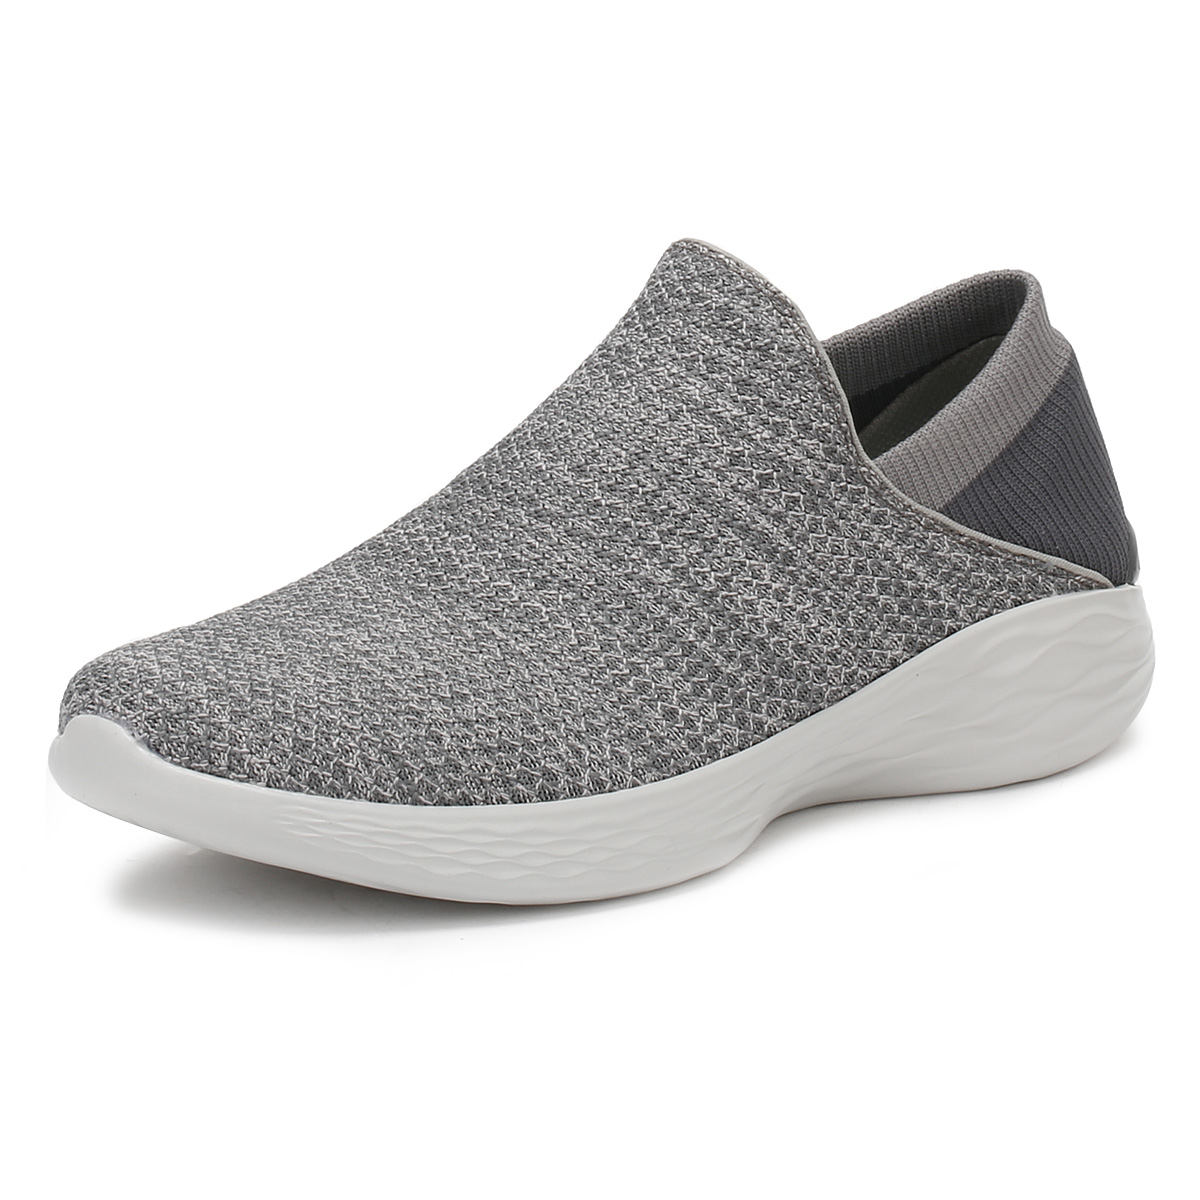 Skechers Womens Charcoal Grey You Trainers Slip On Sport Running